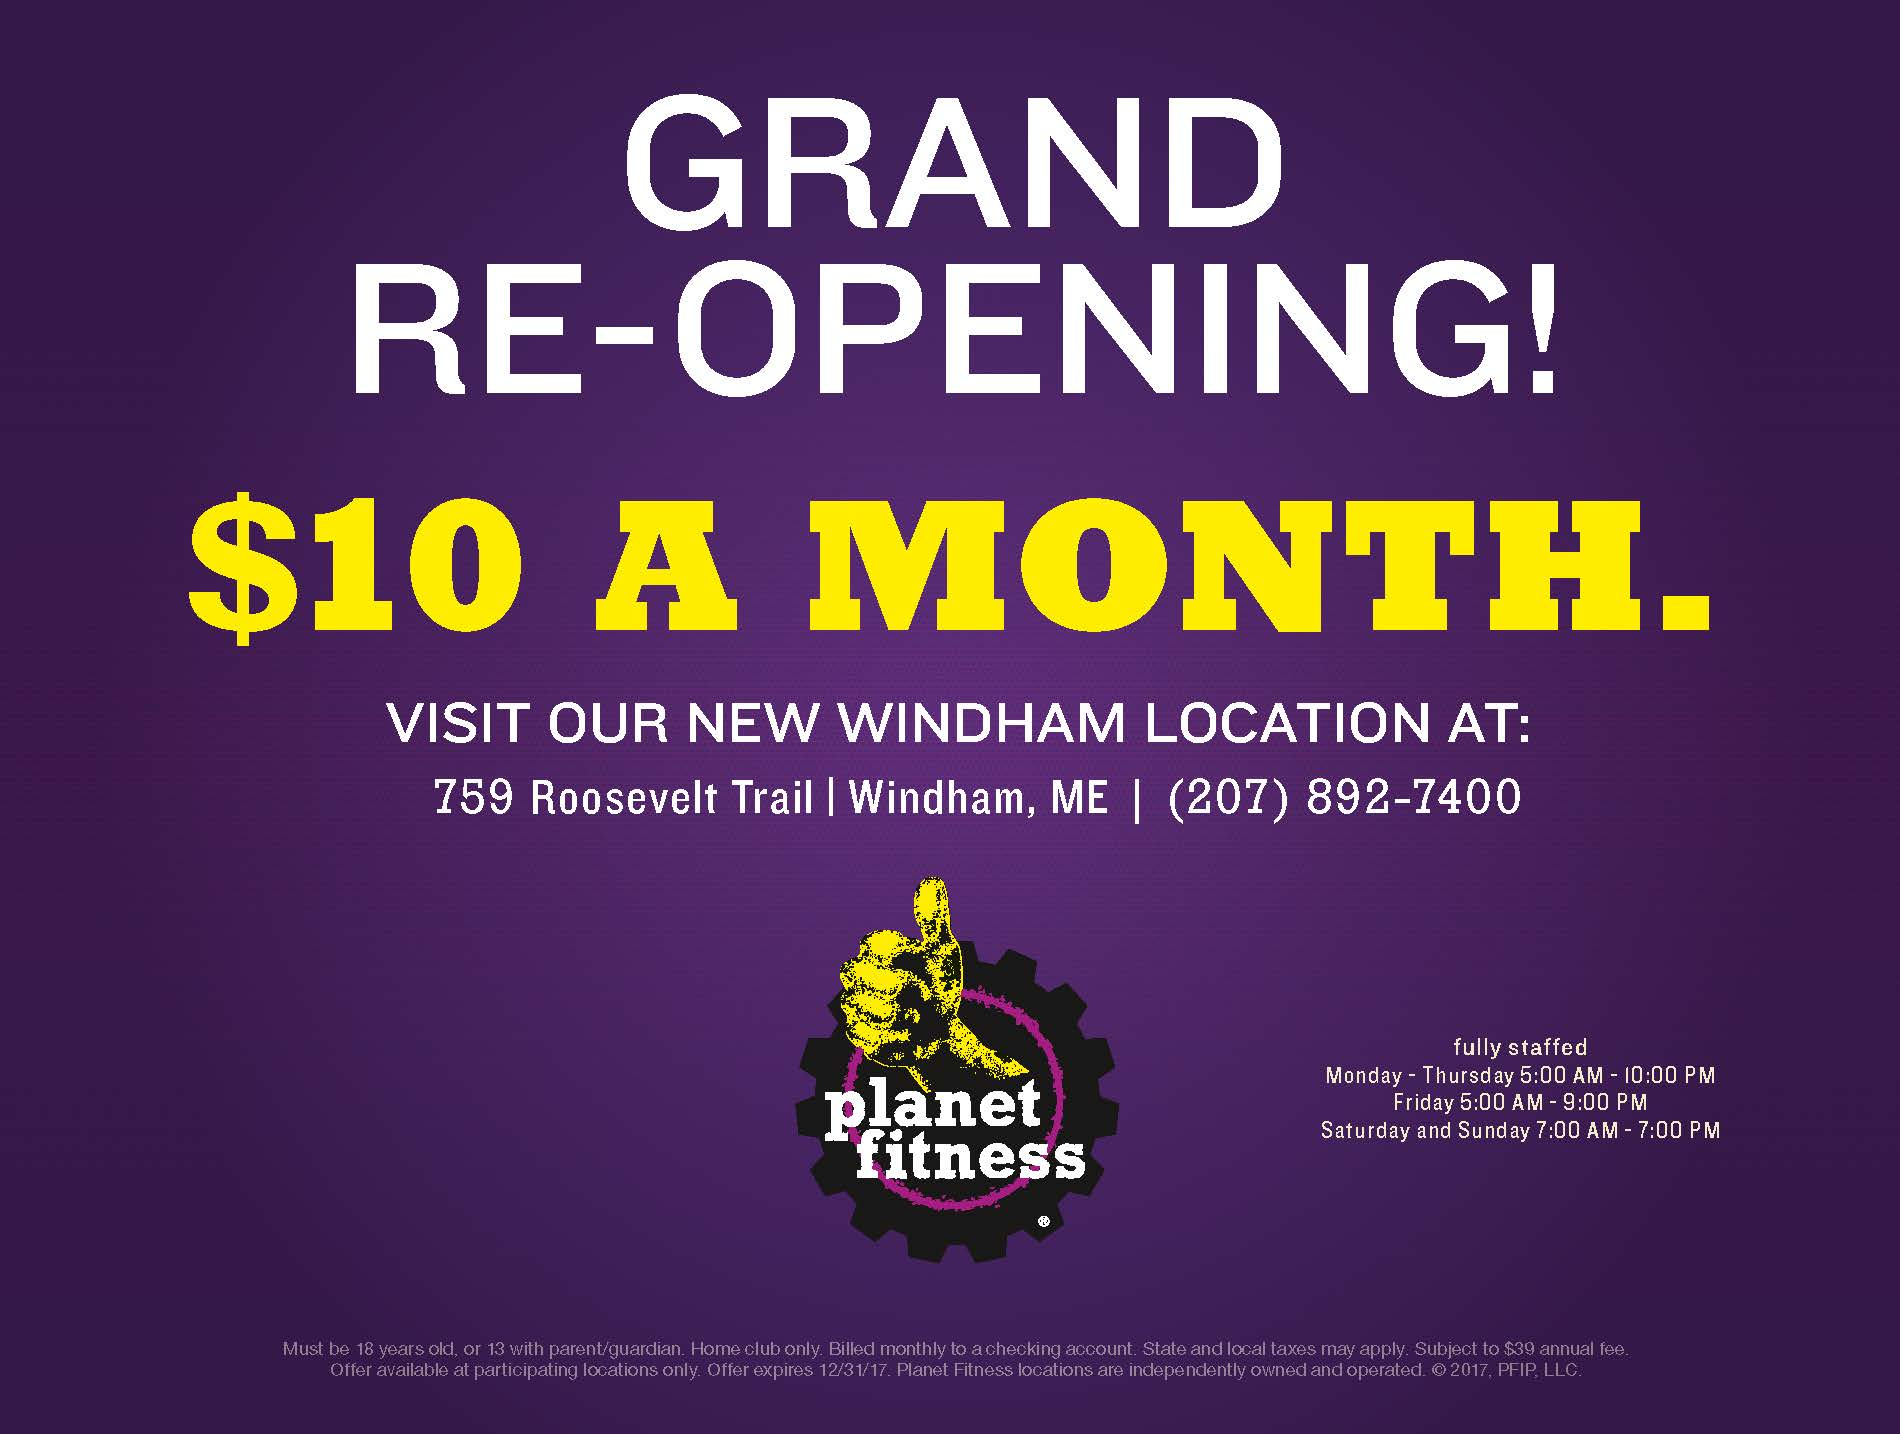 https://www.facebook.com/Planet.Fitness.Windham.ME/?ref=br_rs